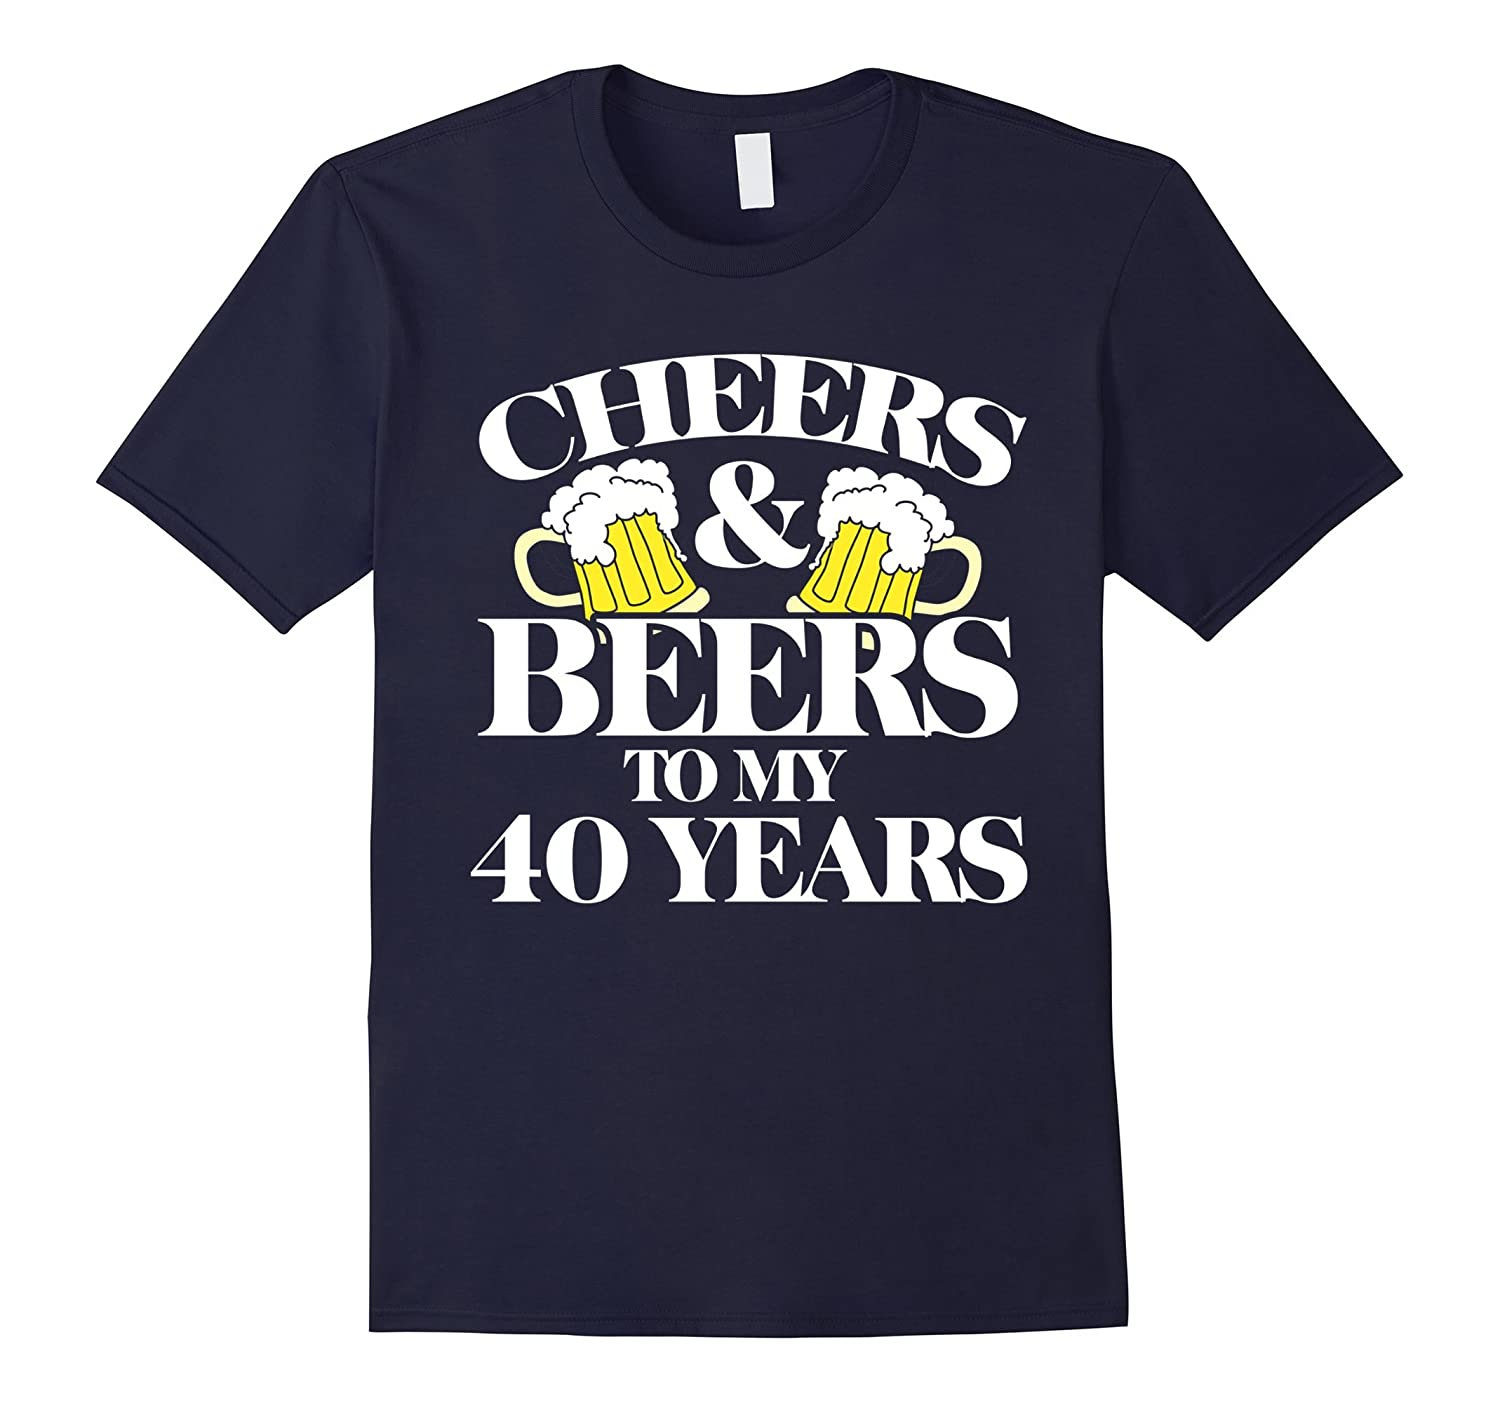 Cheers and Beers to my 40 years shirt 40th birthday t-shirt-BN